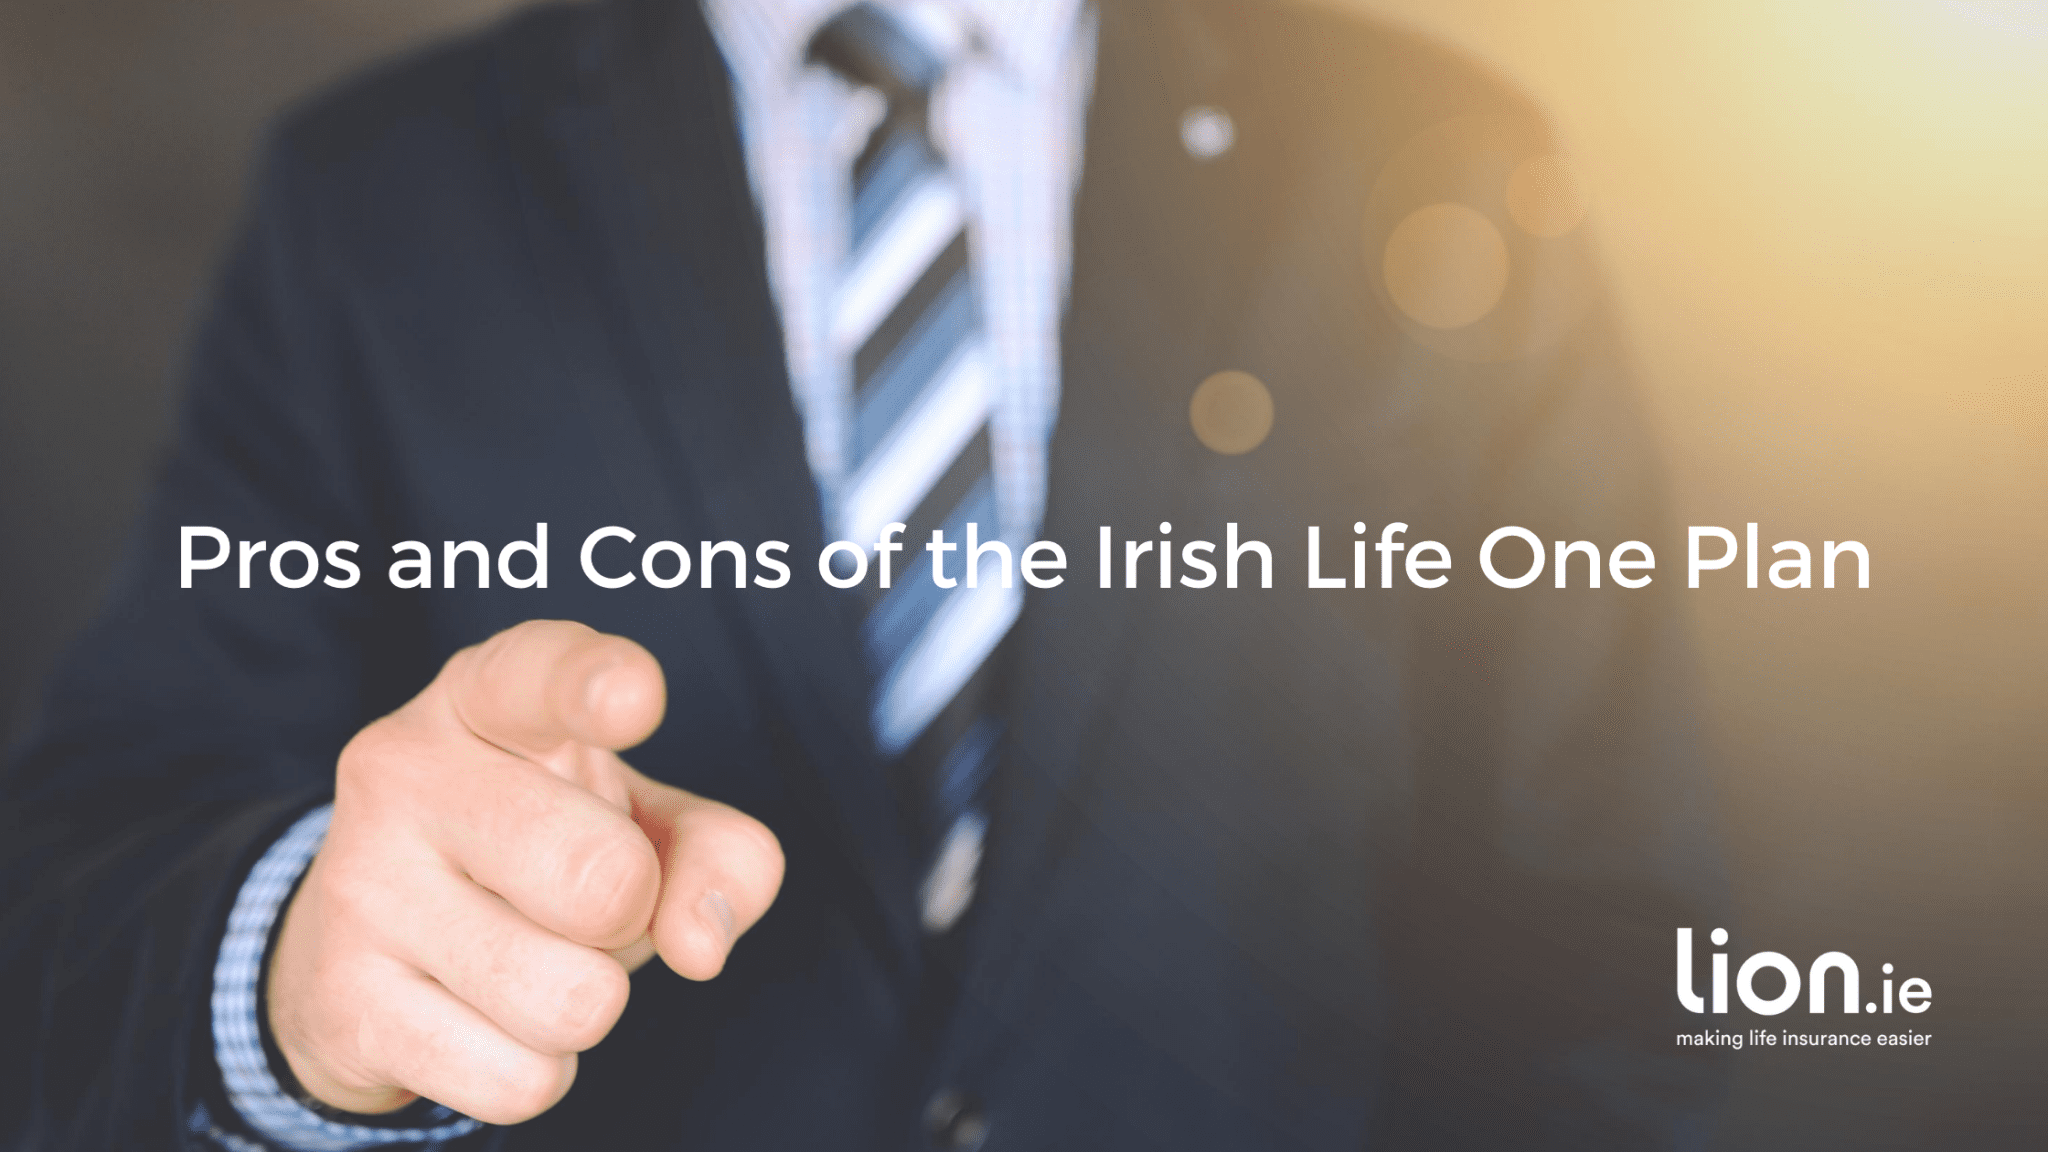 pros and cons of the irish life one plan